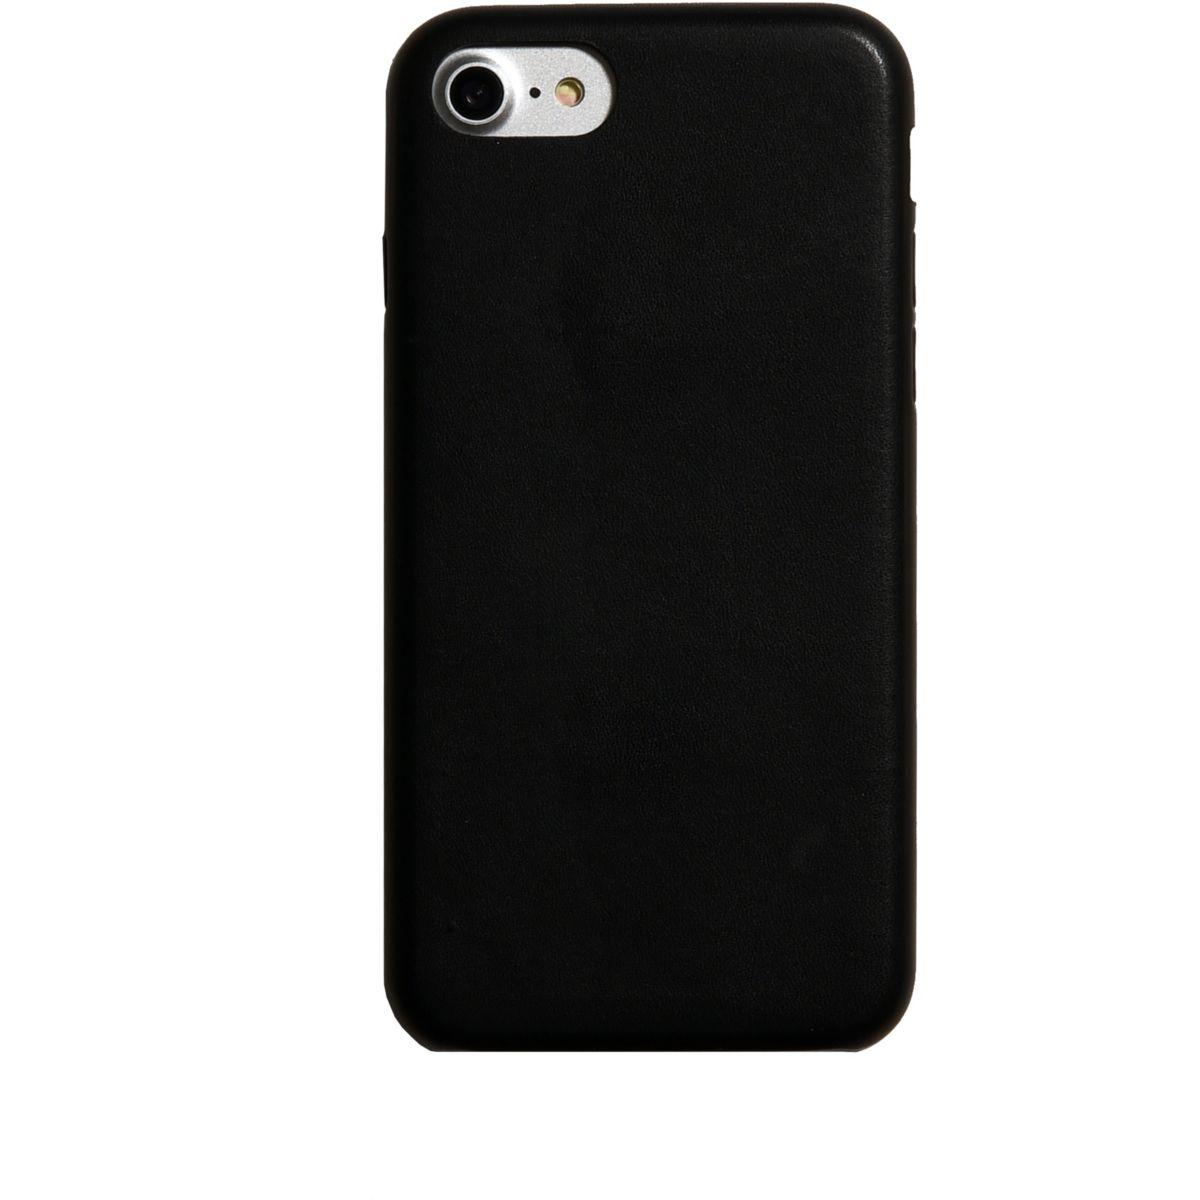 Coque adeqwat iphone 7 noir (photo)